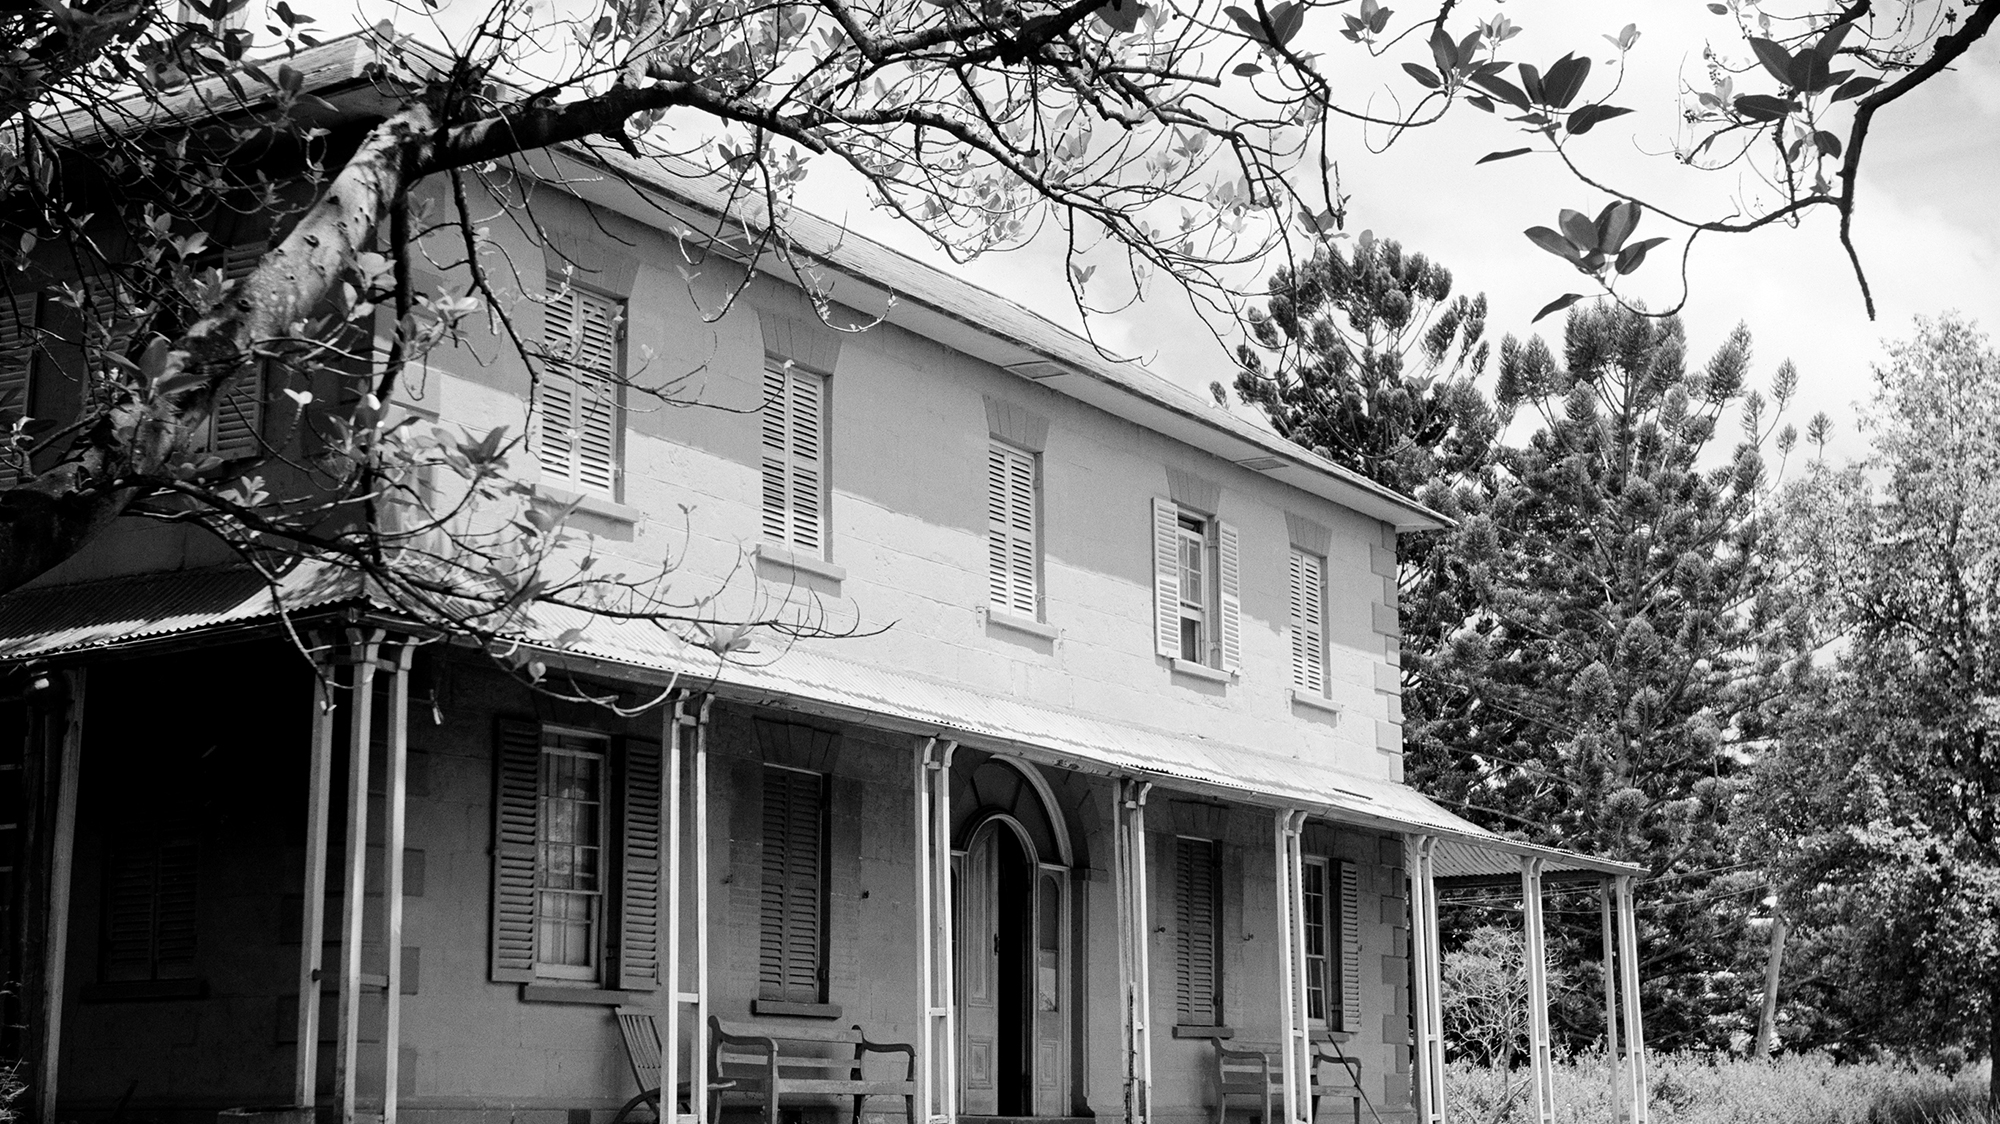 Facade of two storey house with shaded verandah on ground level.